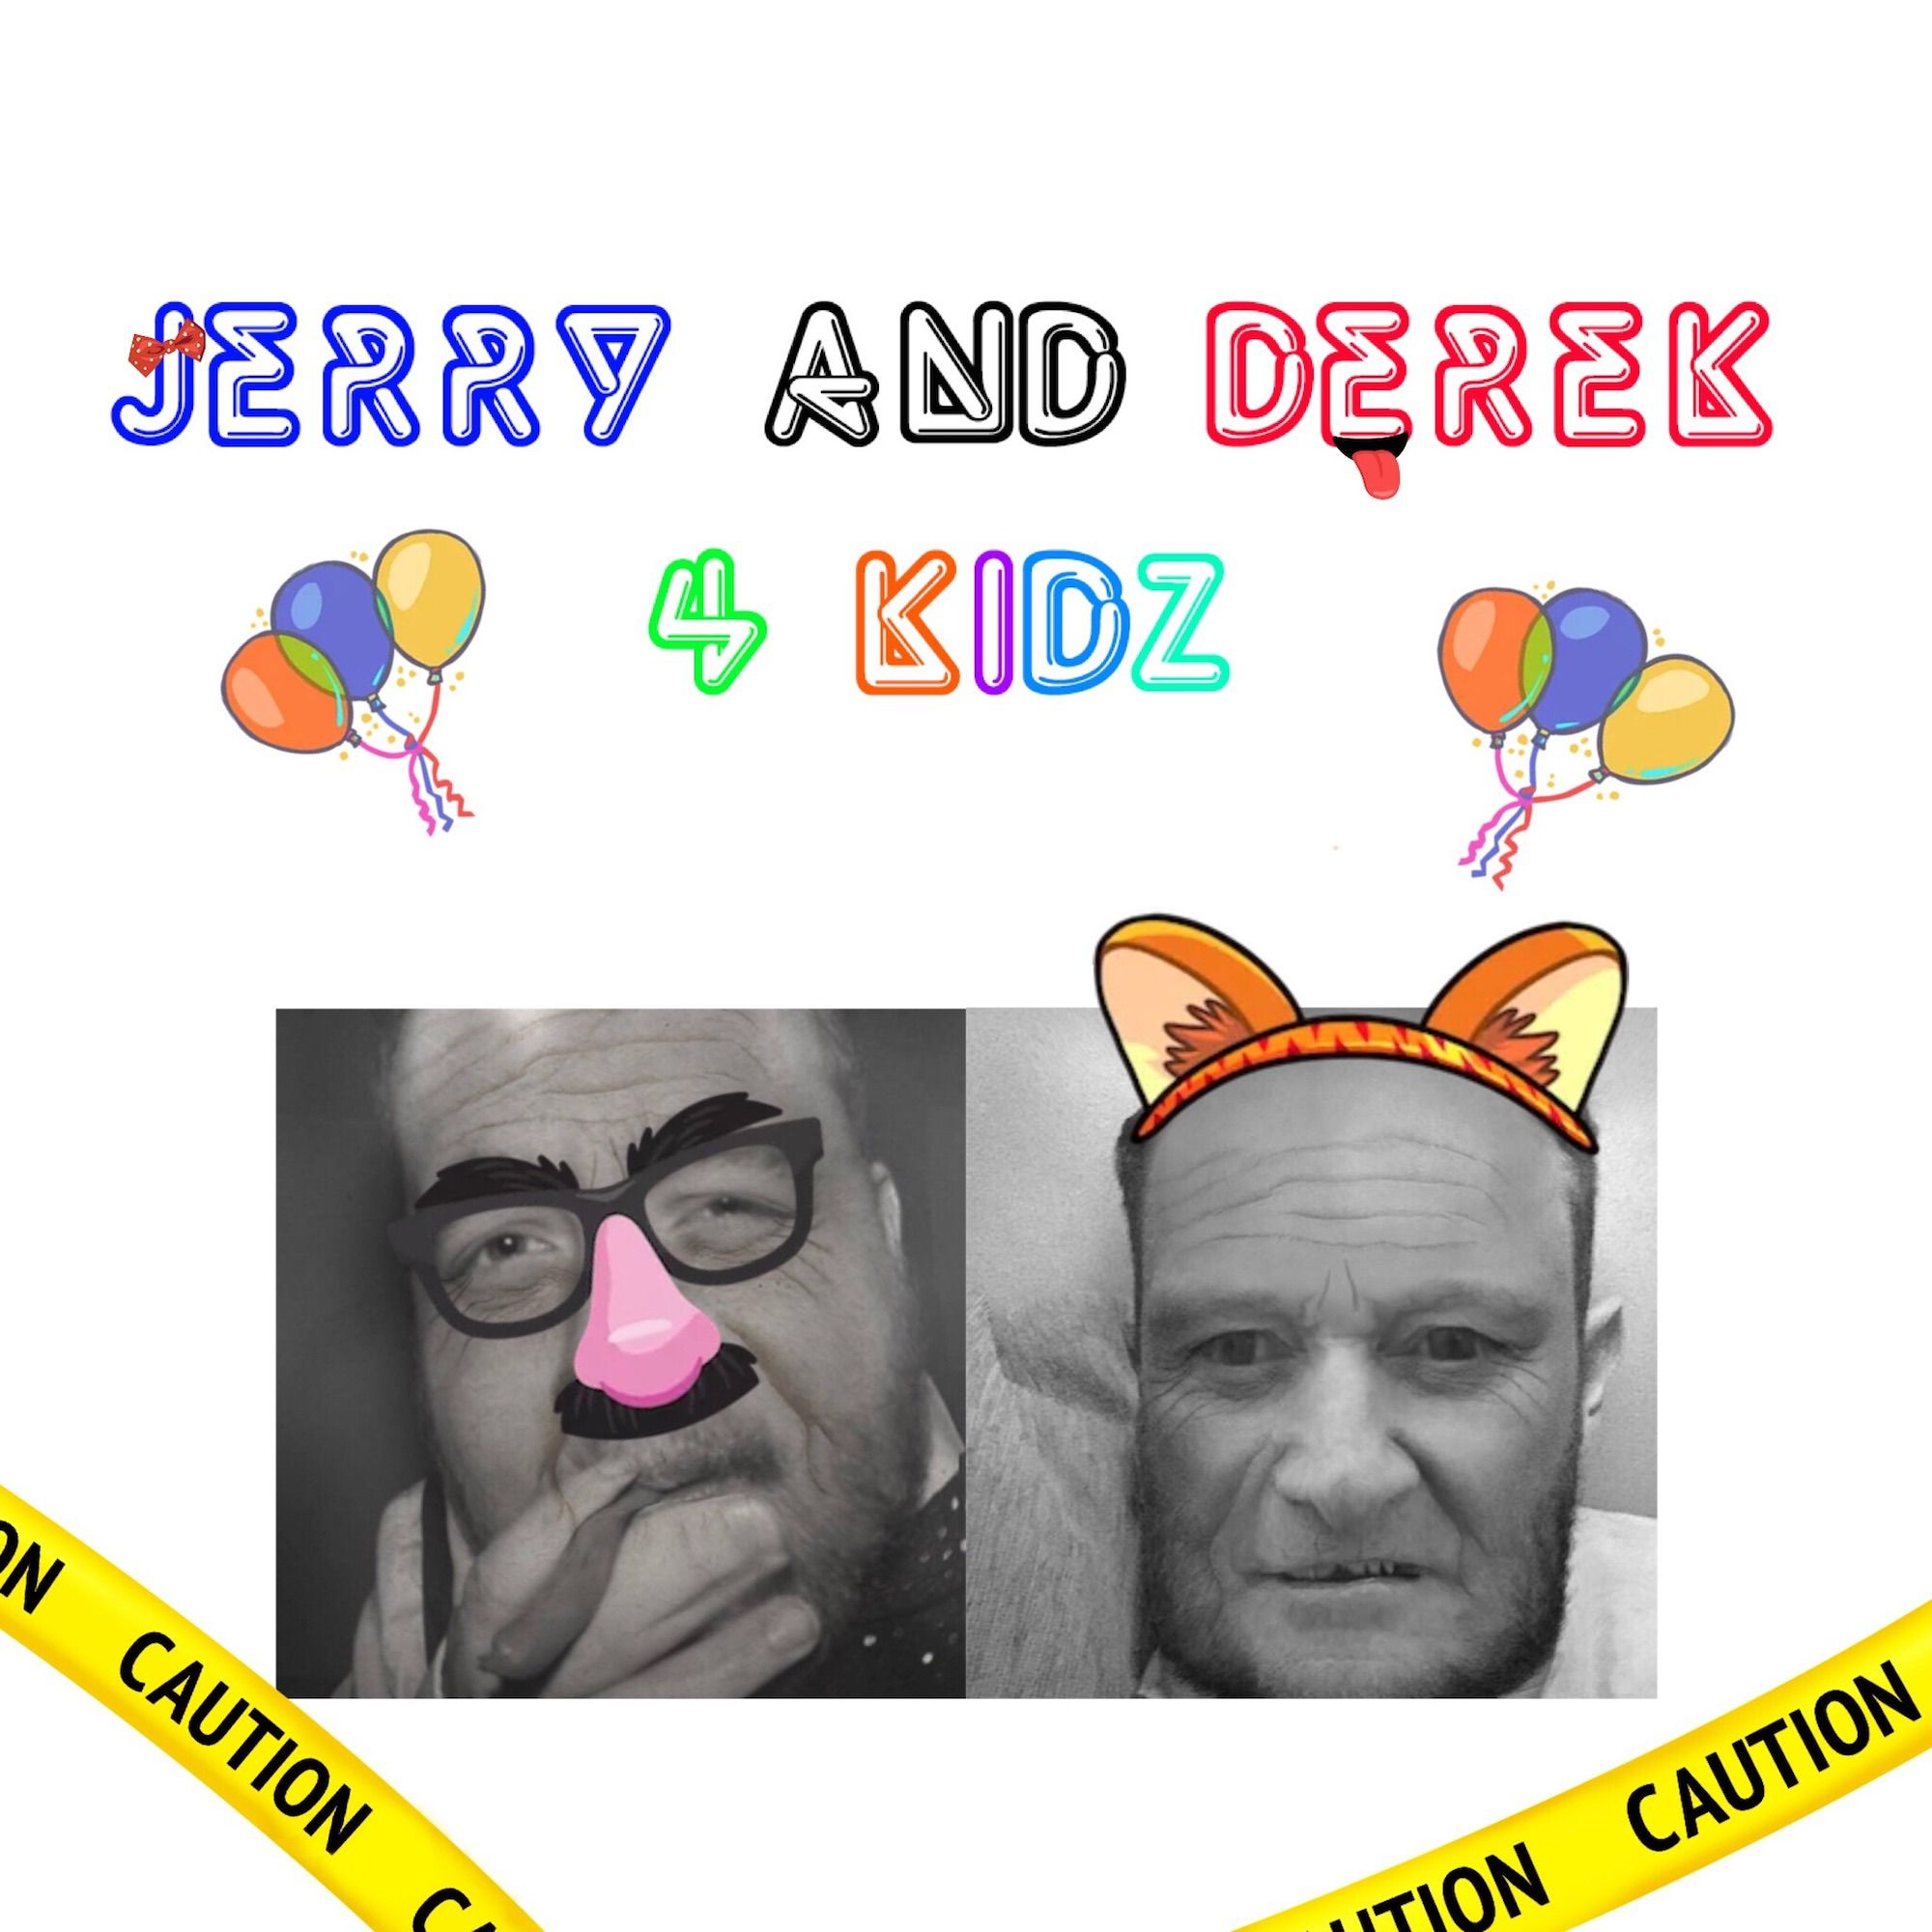 Exposing The Chuckle Brothers! - Jerry and Derek